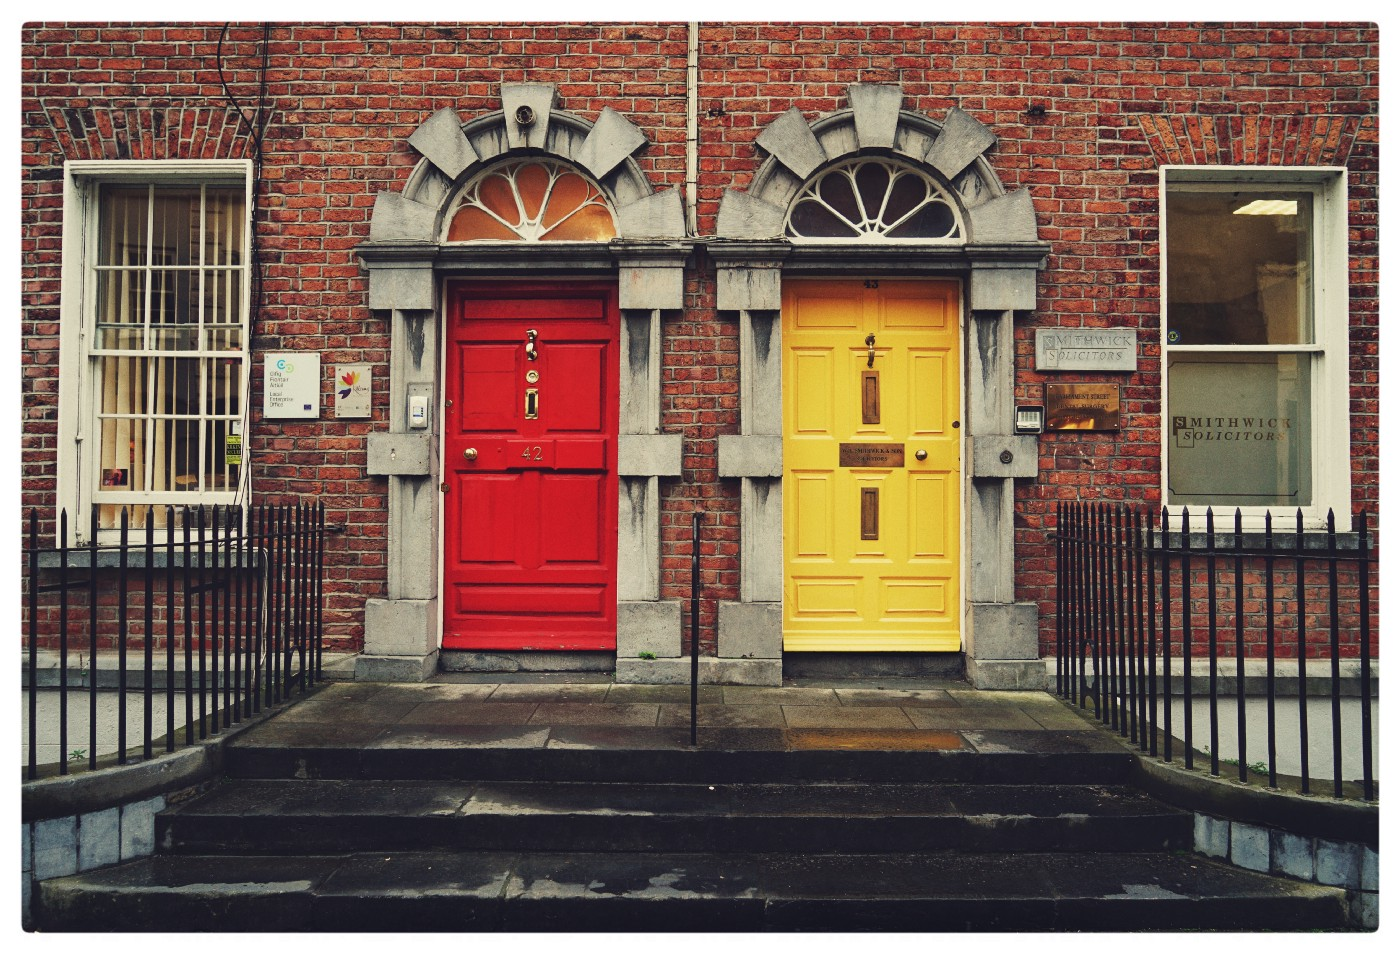 a red and a yellow door — to act or not to act